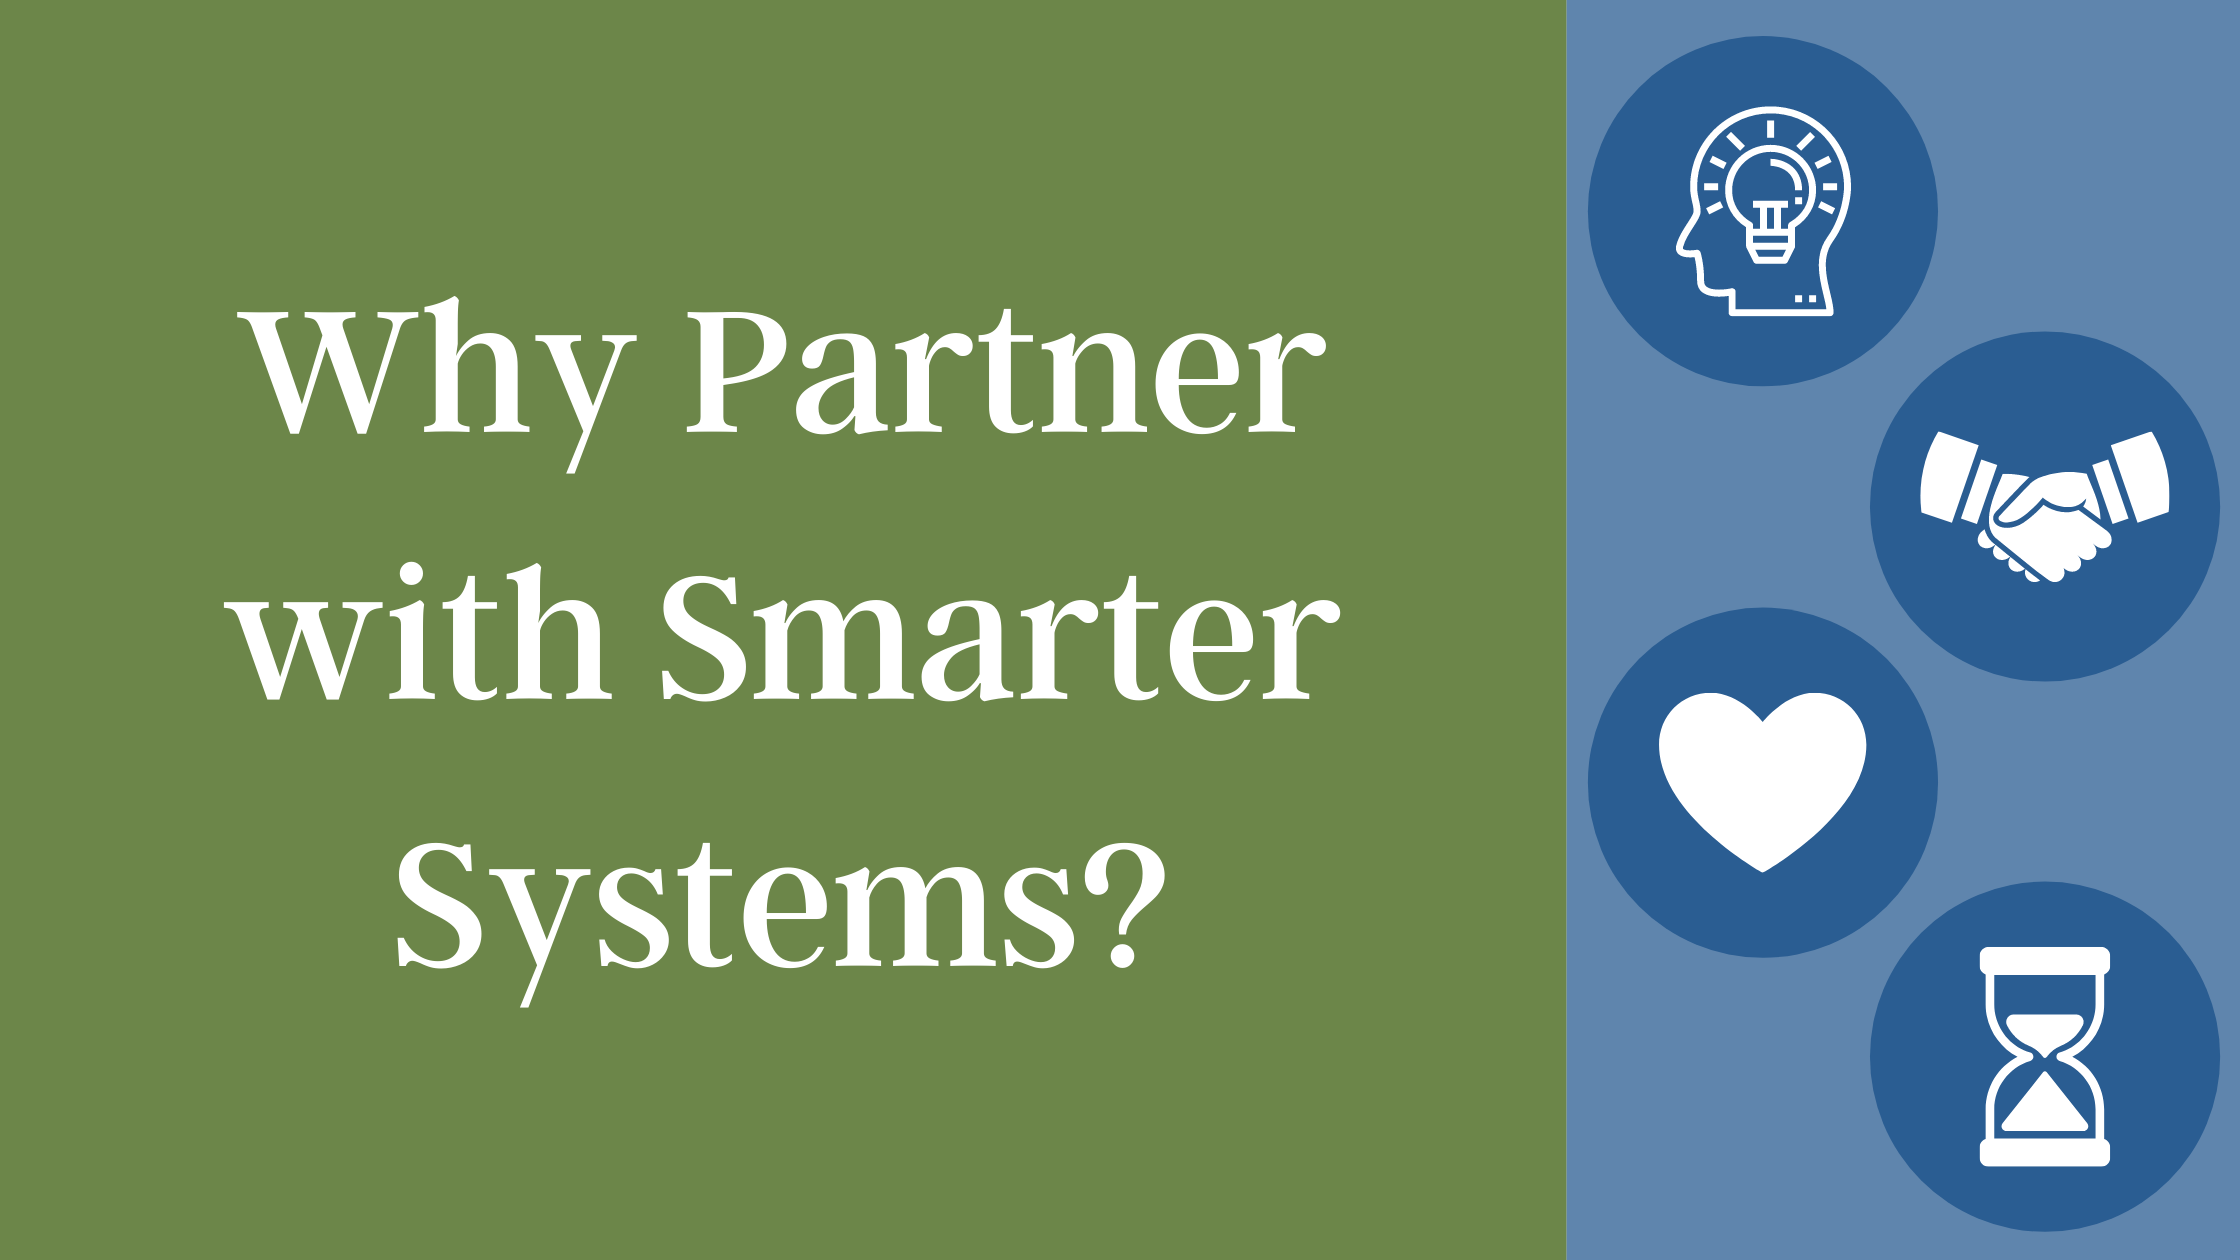 Why Partner with Smarter Systems?